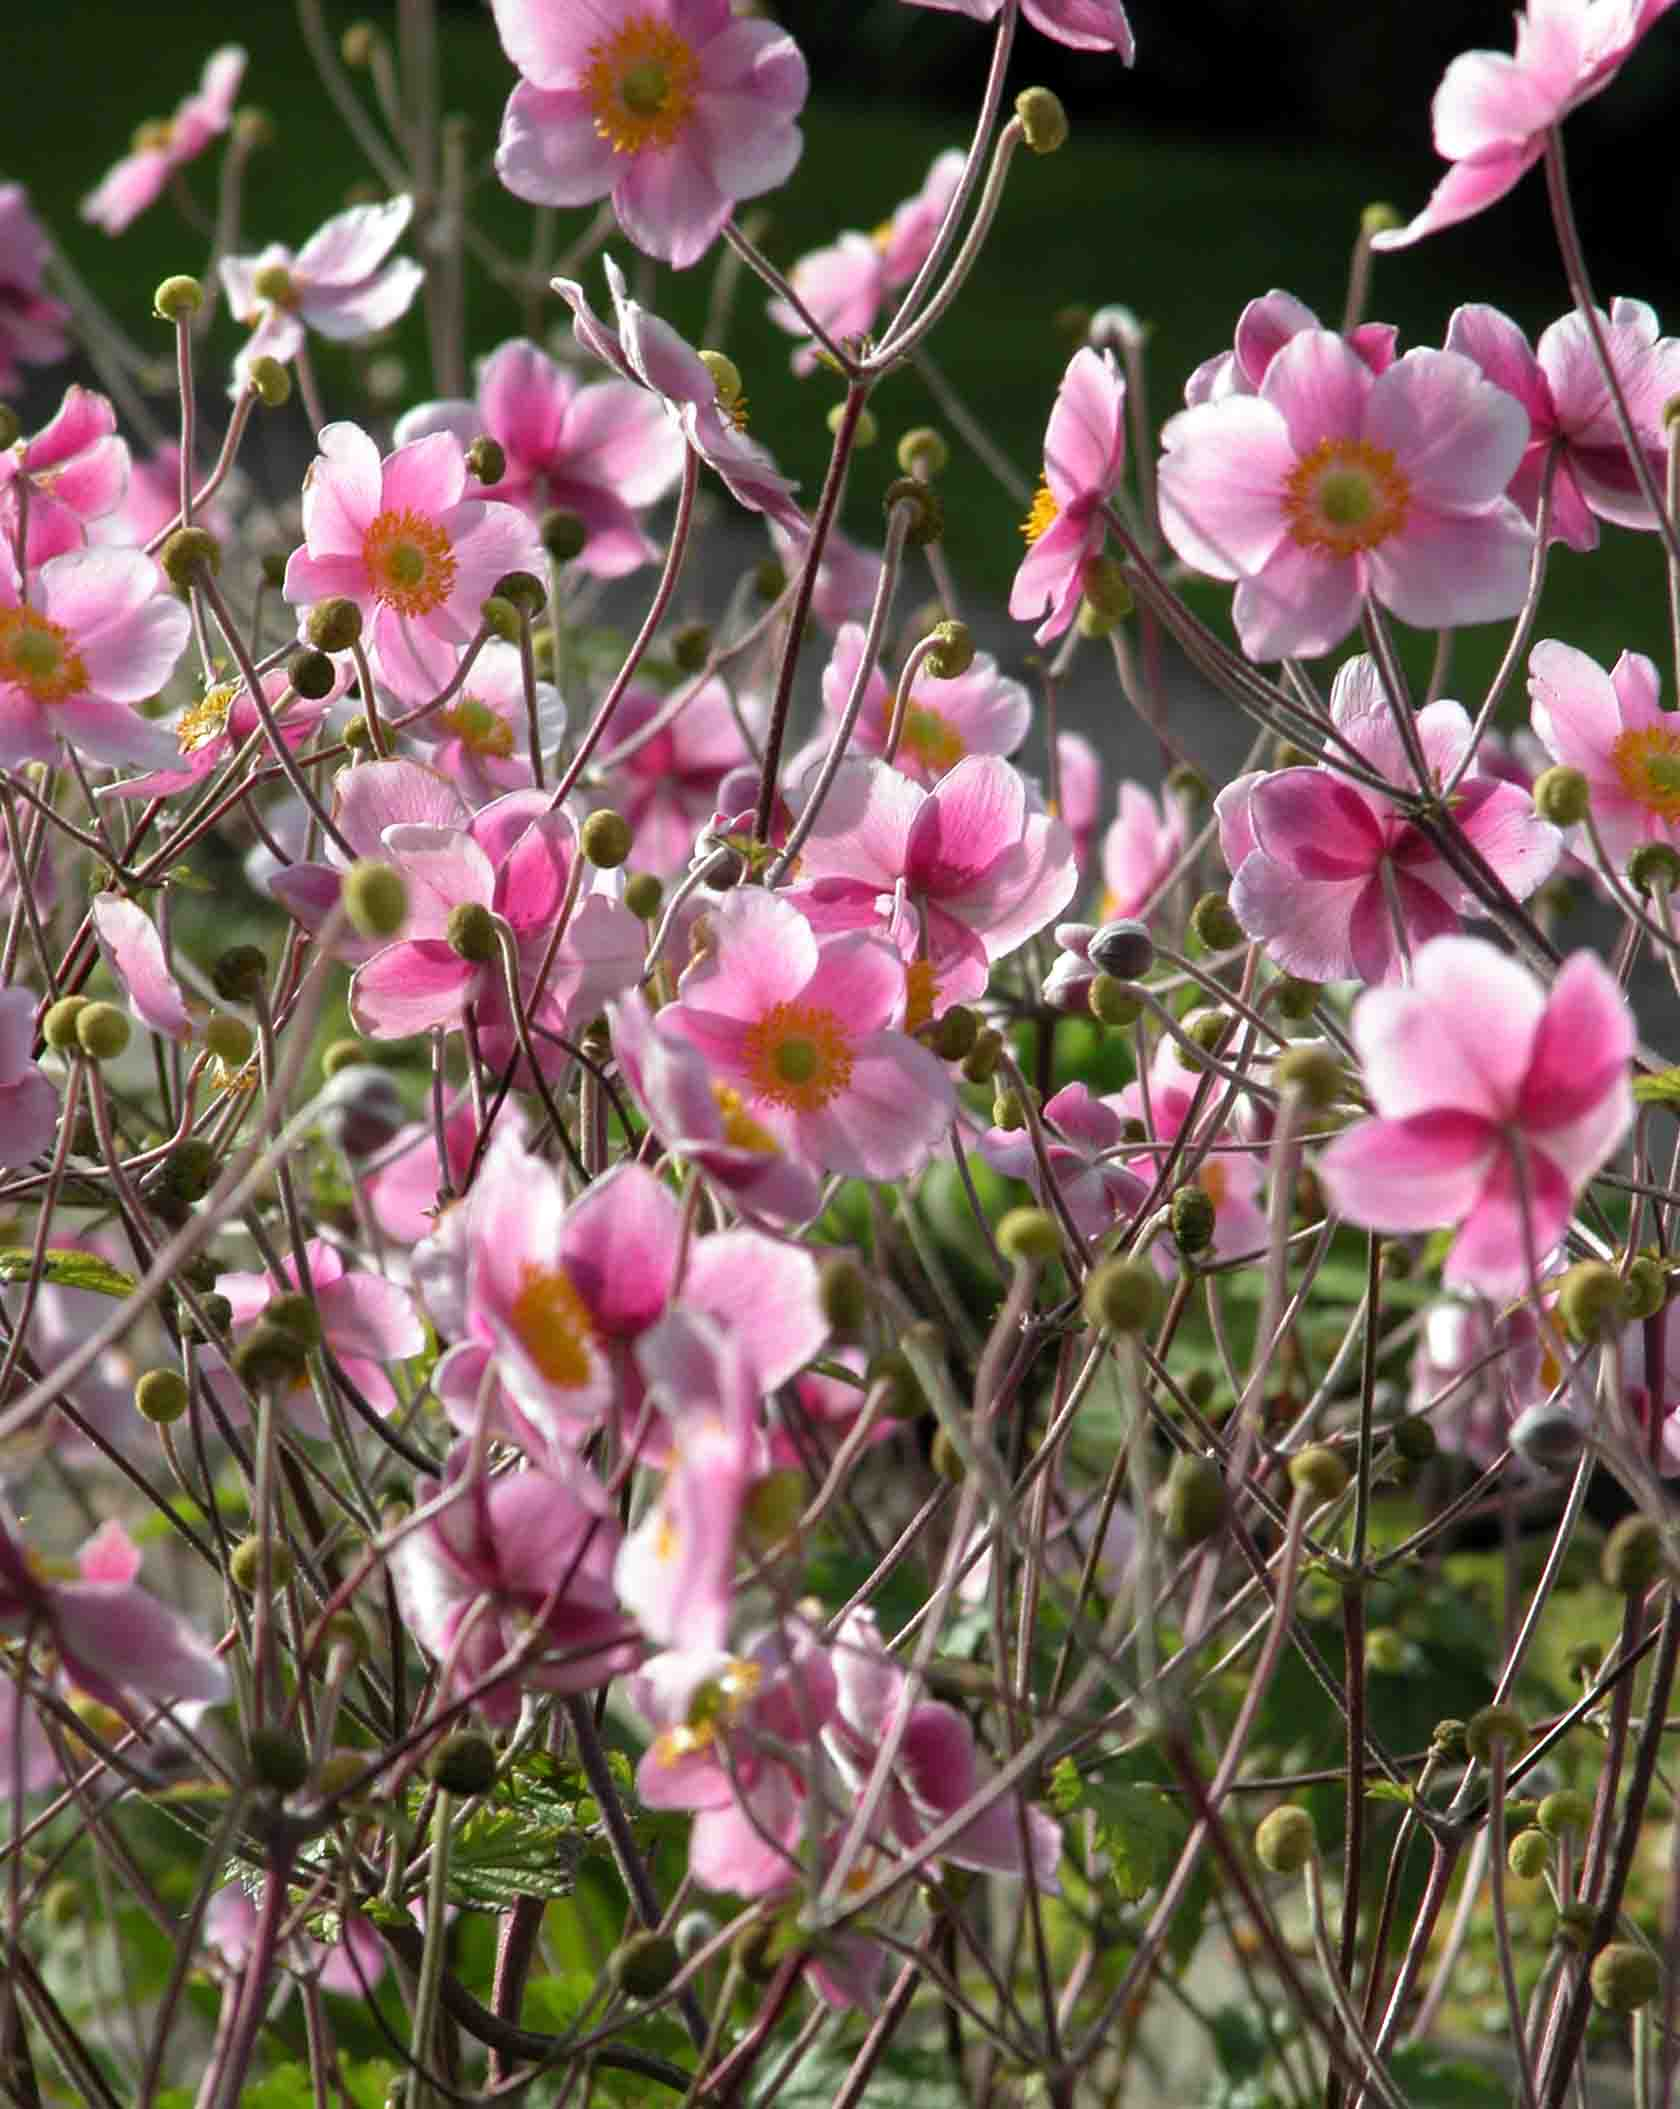 Wild-flower garden design with a mass of graceful pale-pink Japanese anemone flowers floating above a border in late summer.